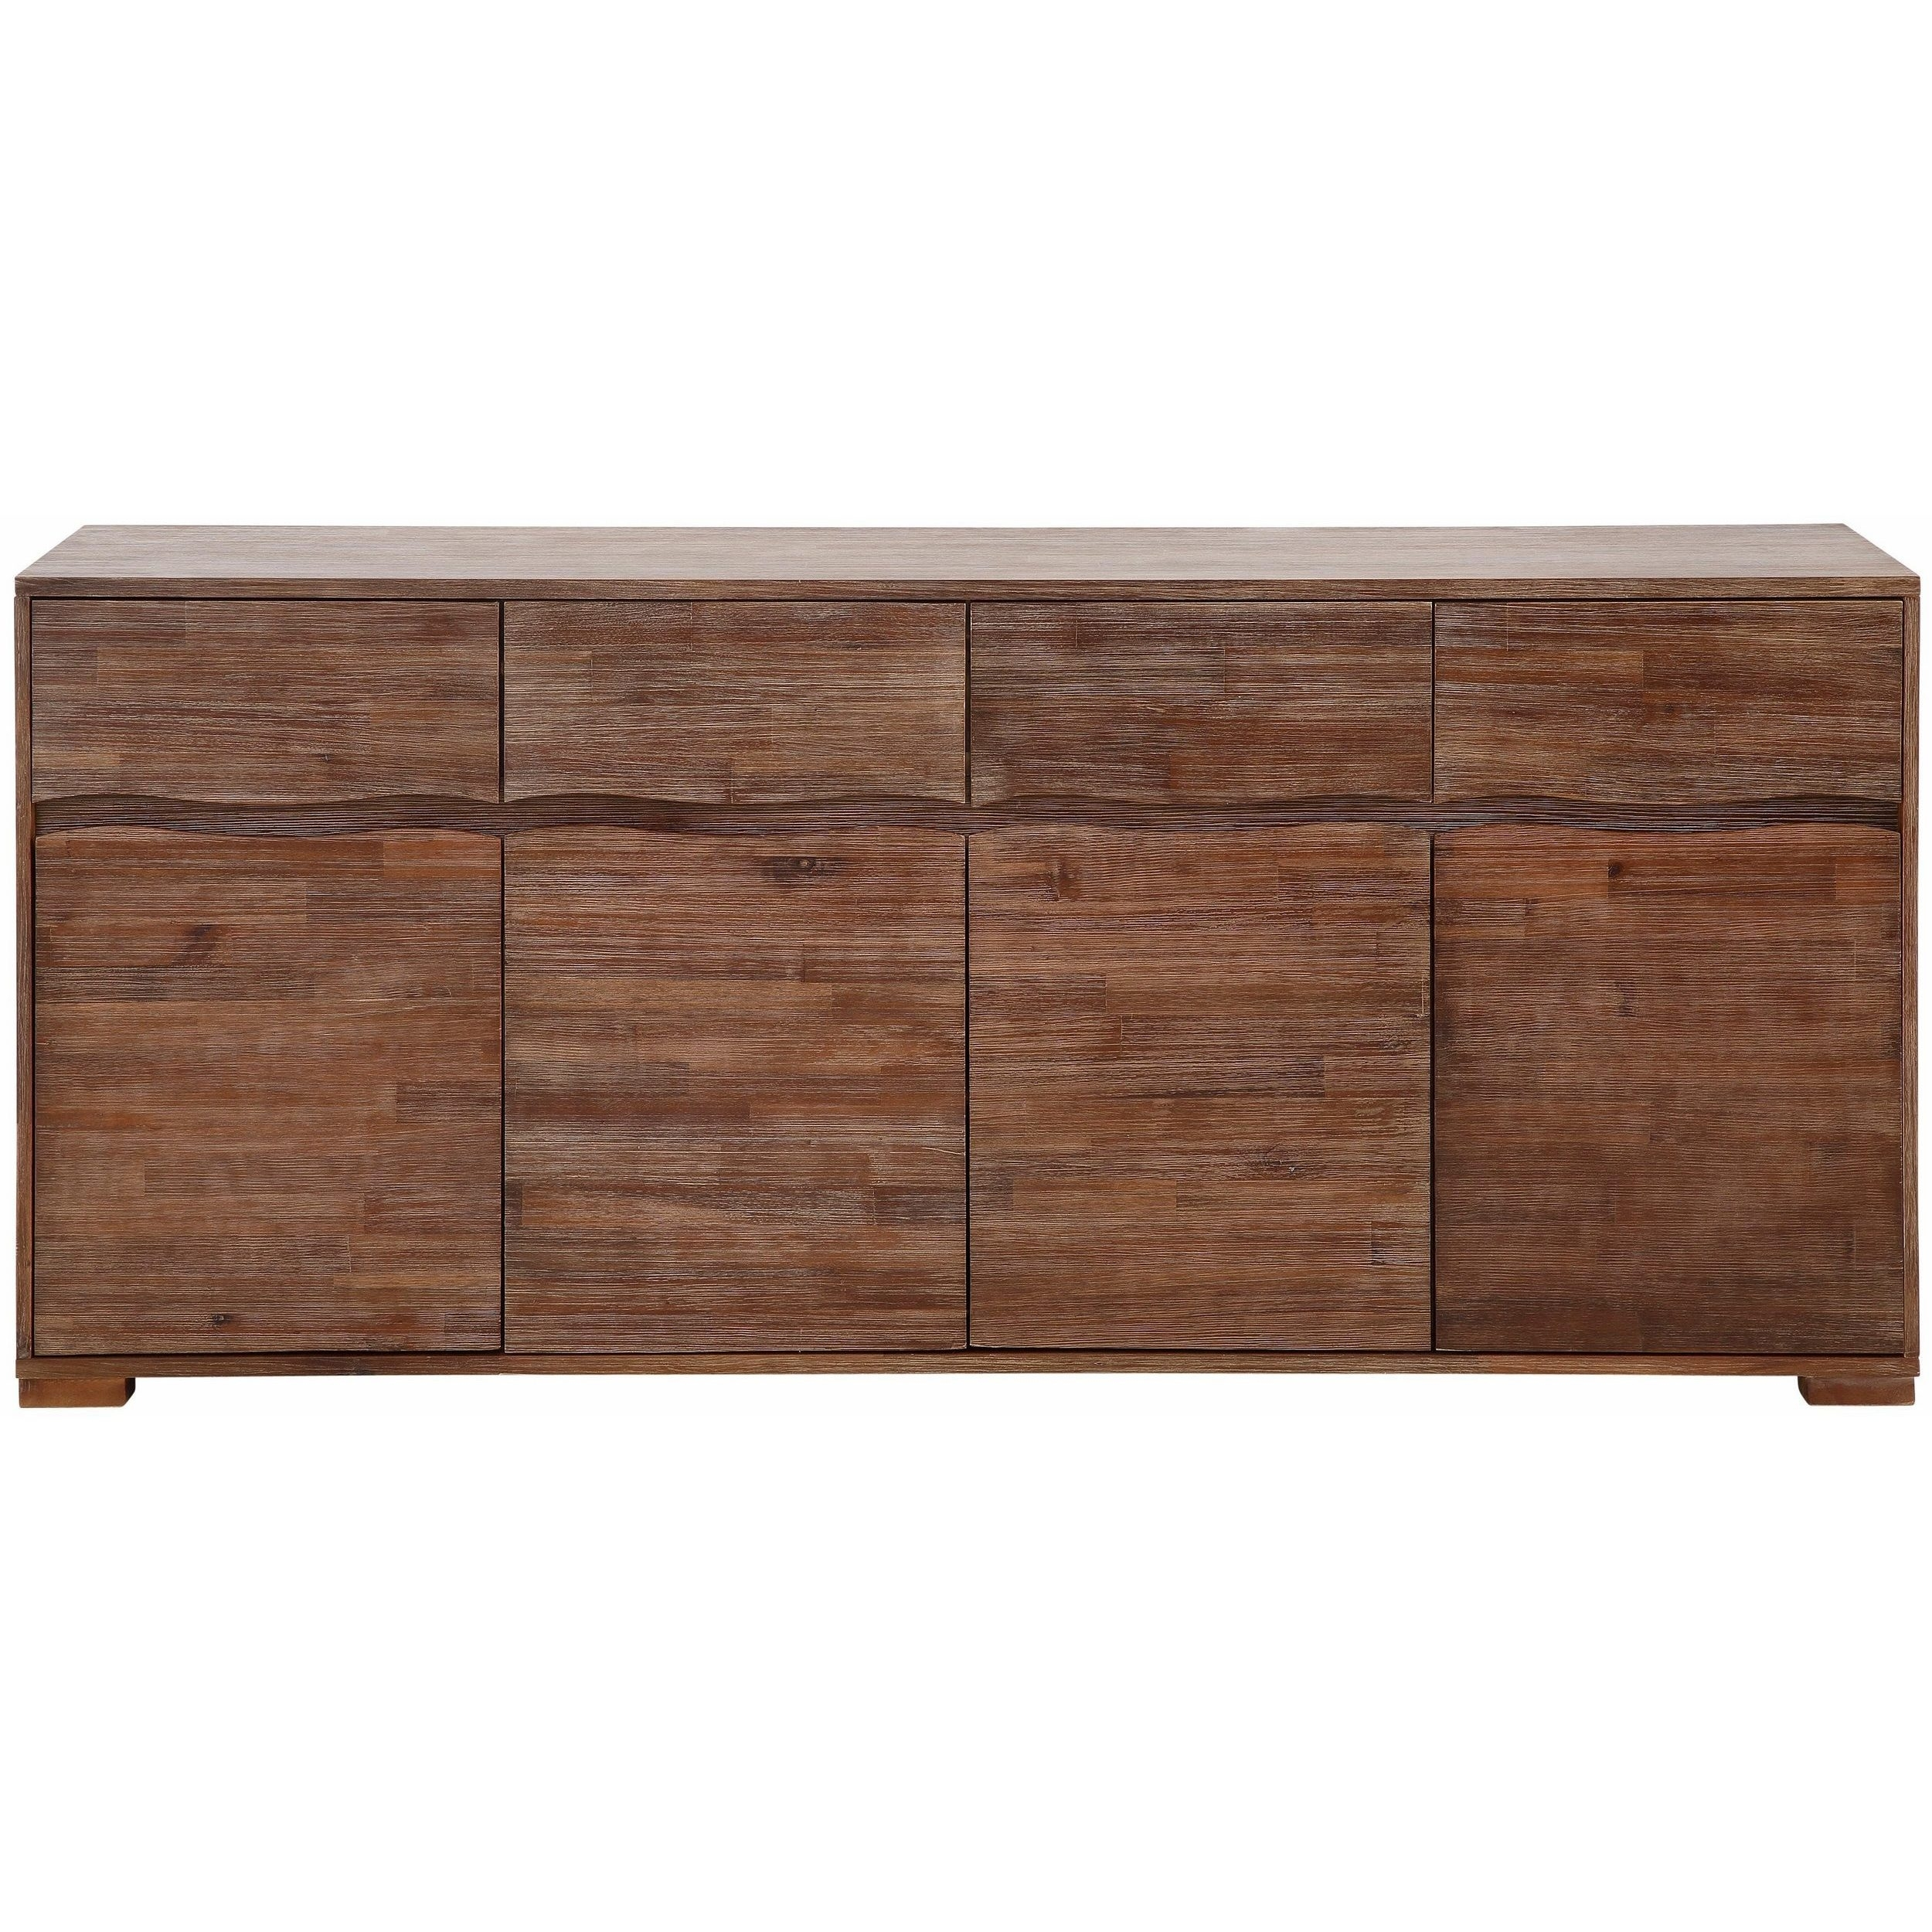 Popular Photo of Acacia Wood 4 Door Sideboards